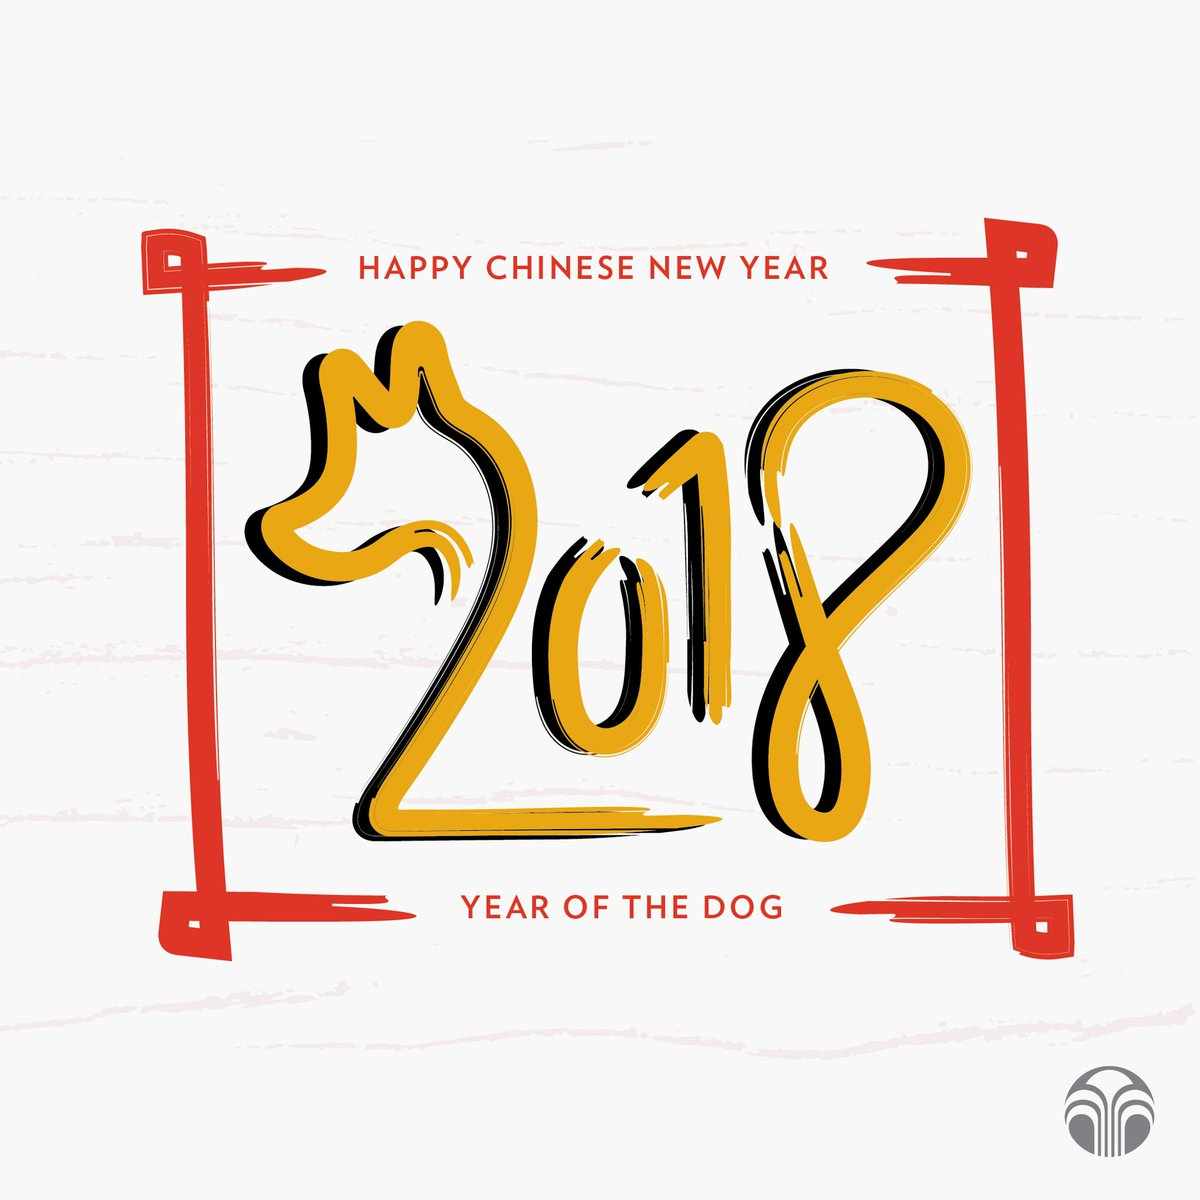 nu skin on twitter today we are celebrating the chinesenewyear we invite all of you to join us and share your favorite traditions